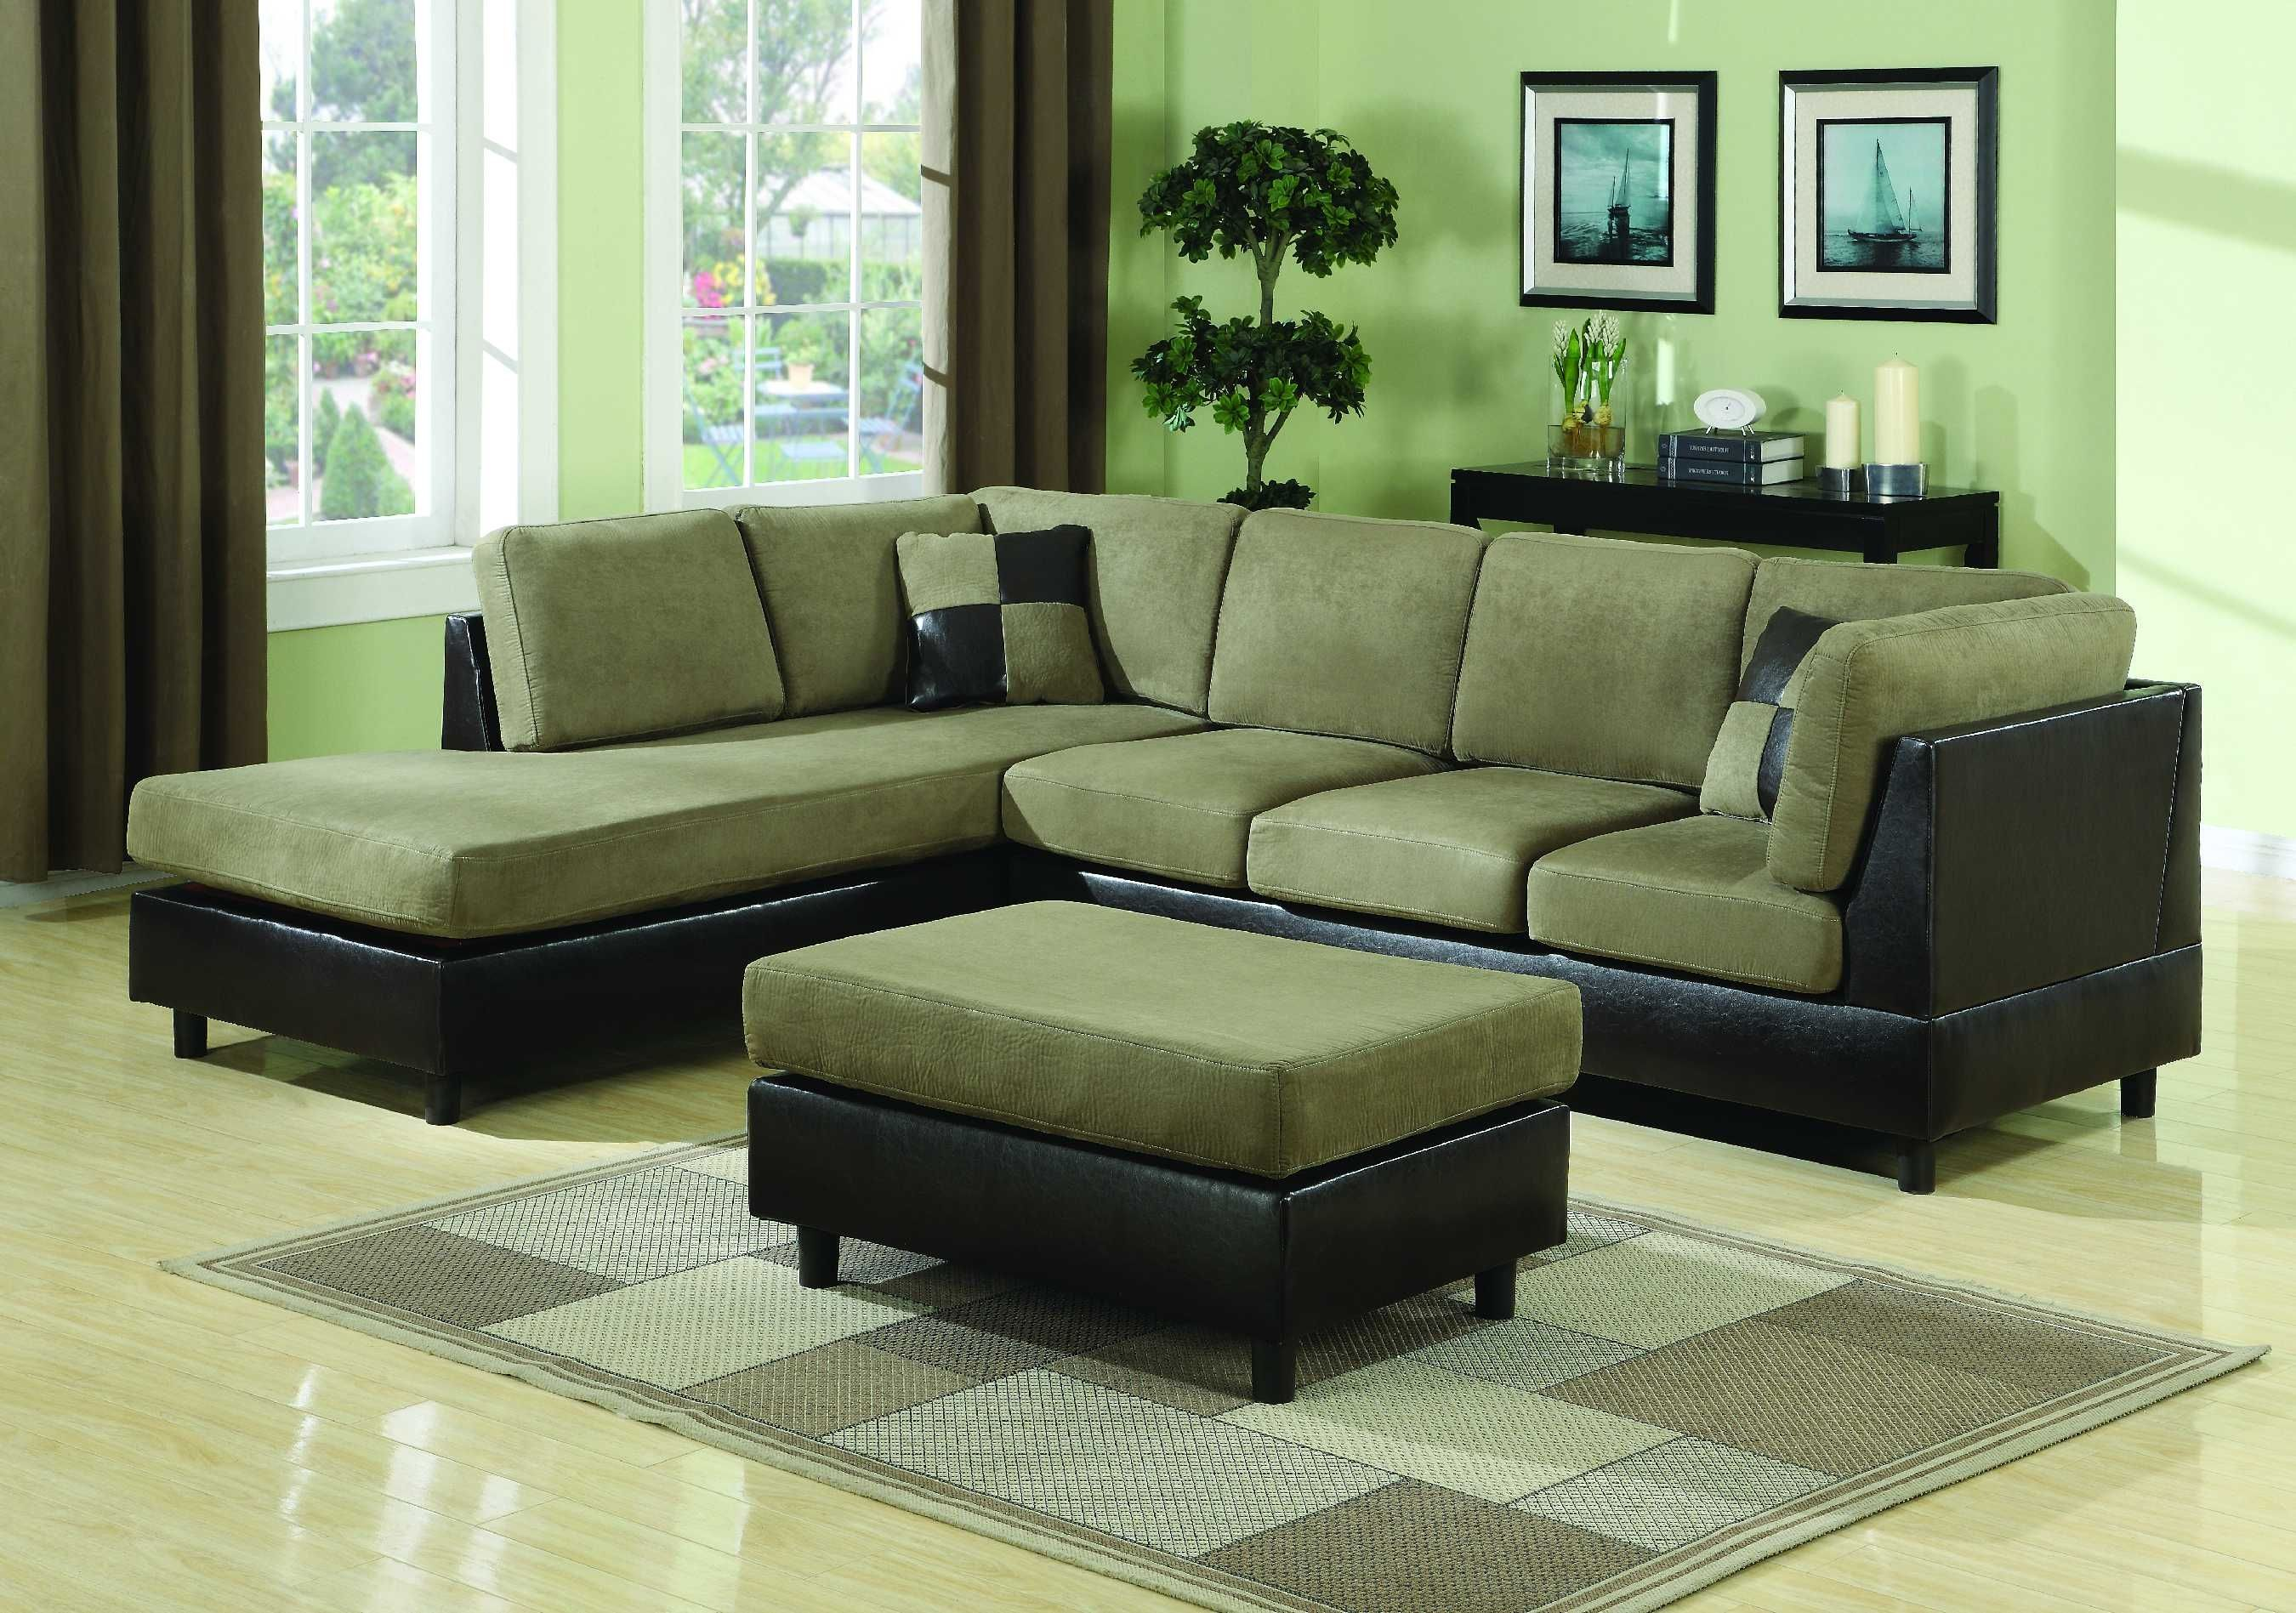 design off couch z la green shaped best forest sofa sectional l cool beautiful sofas of boy ideas